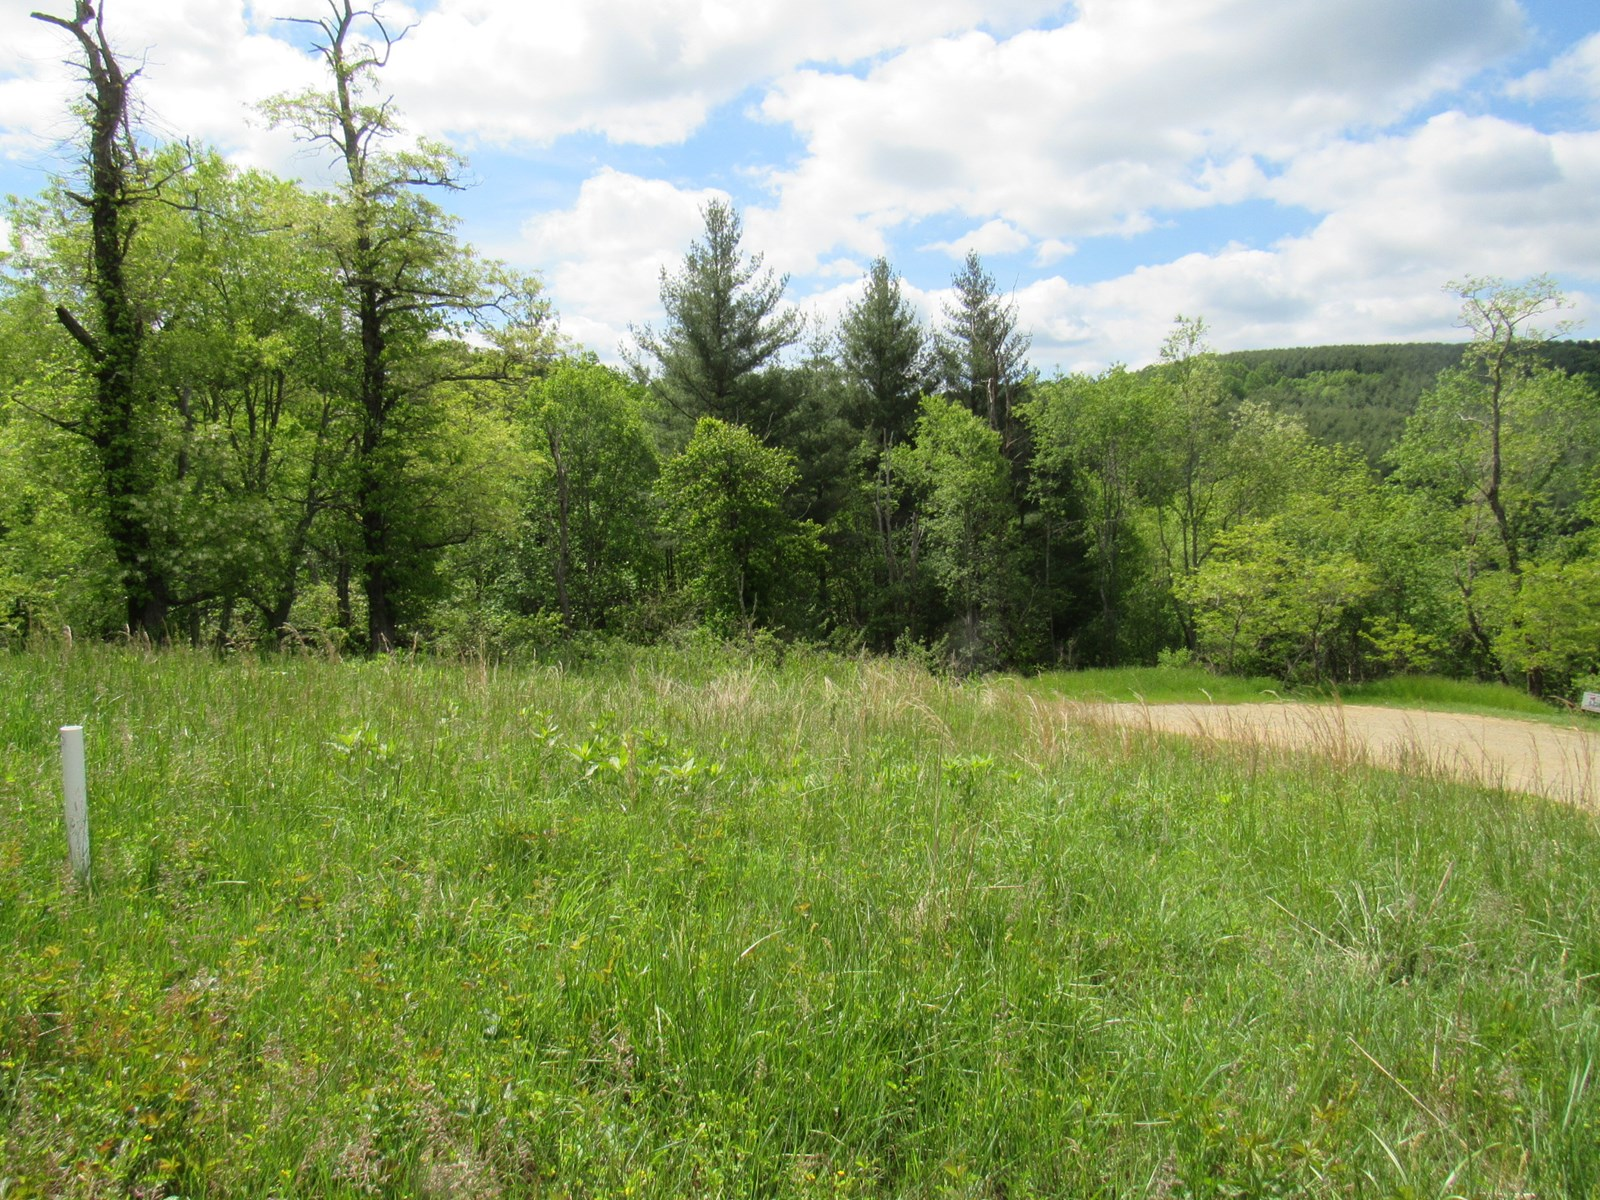 Building Lot for Sale in Piney Creek NC Alleghany Co